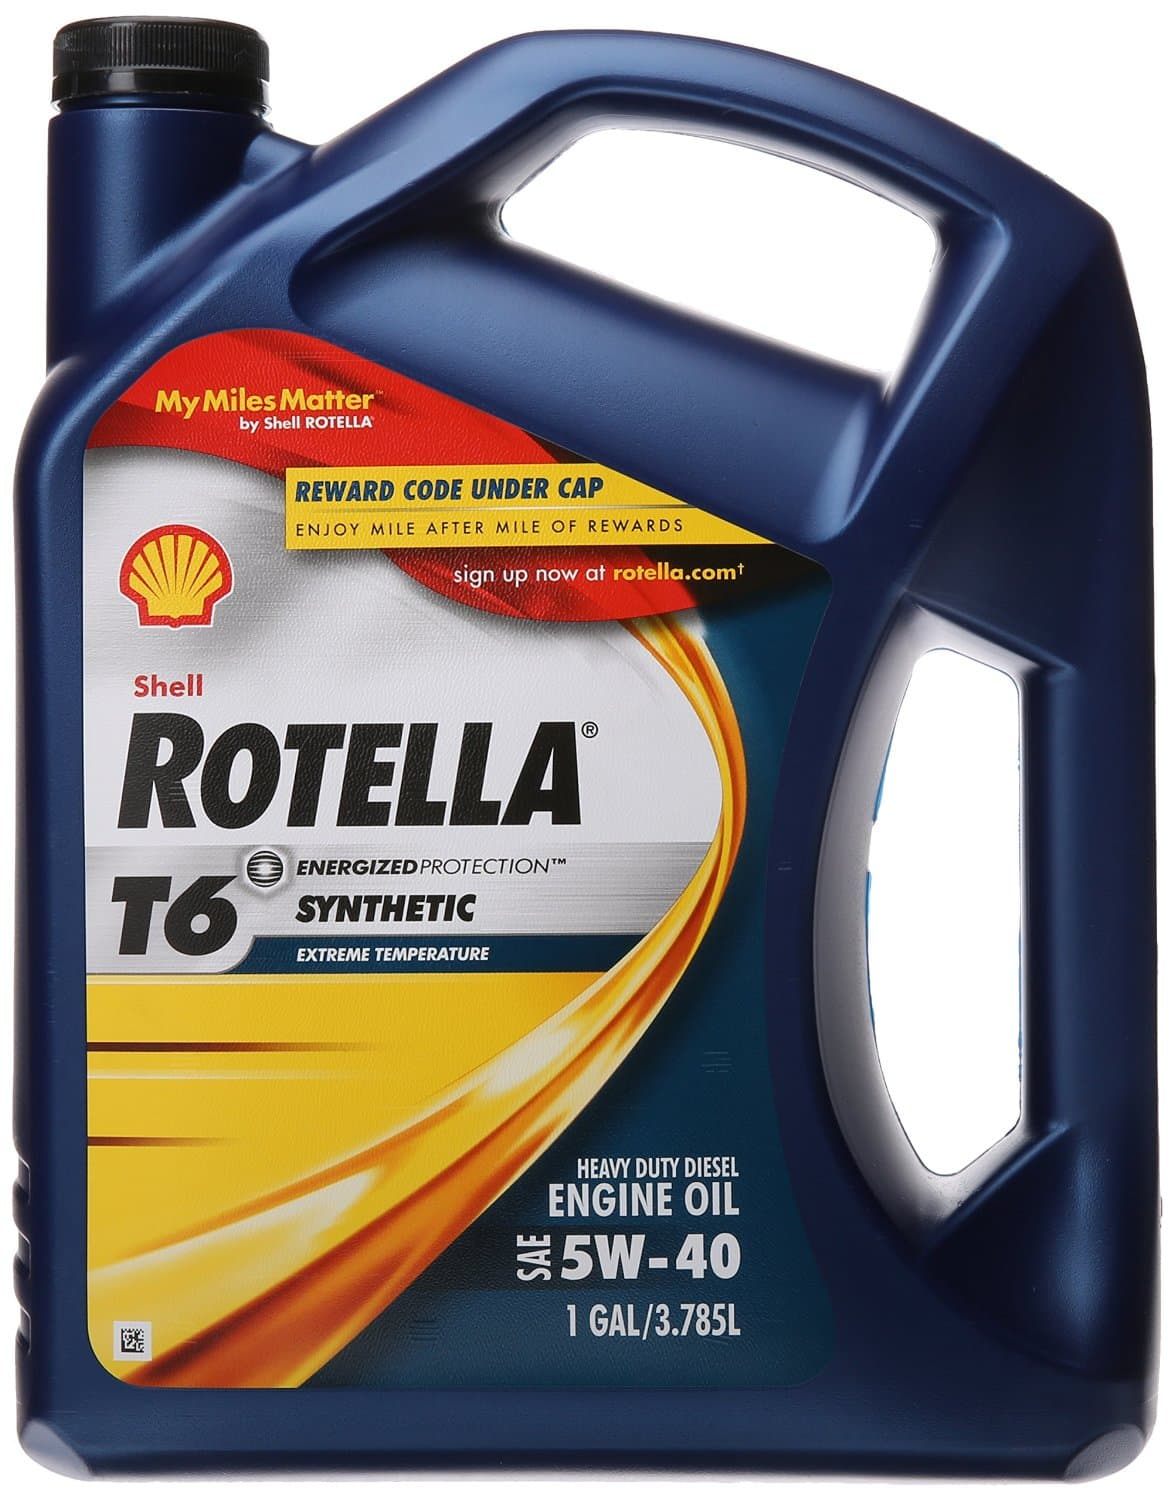 Prime Member: 1-Gallon Shell Rotella T6 5W-40 Full Synthetic Heavy Duty Diesel Engine Oil  $11.29 or Less After $5 Rebate + Free Shipping Amazon.com